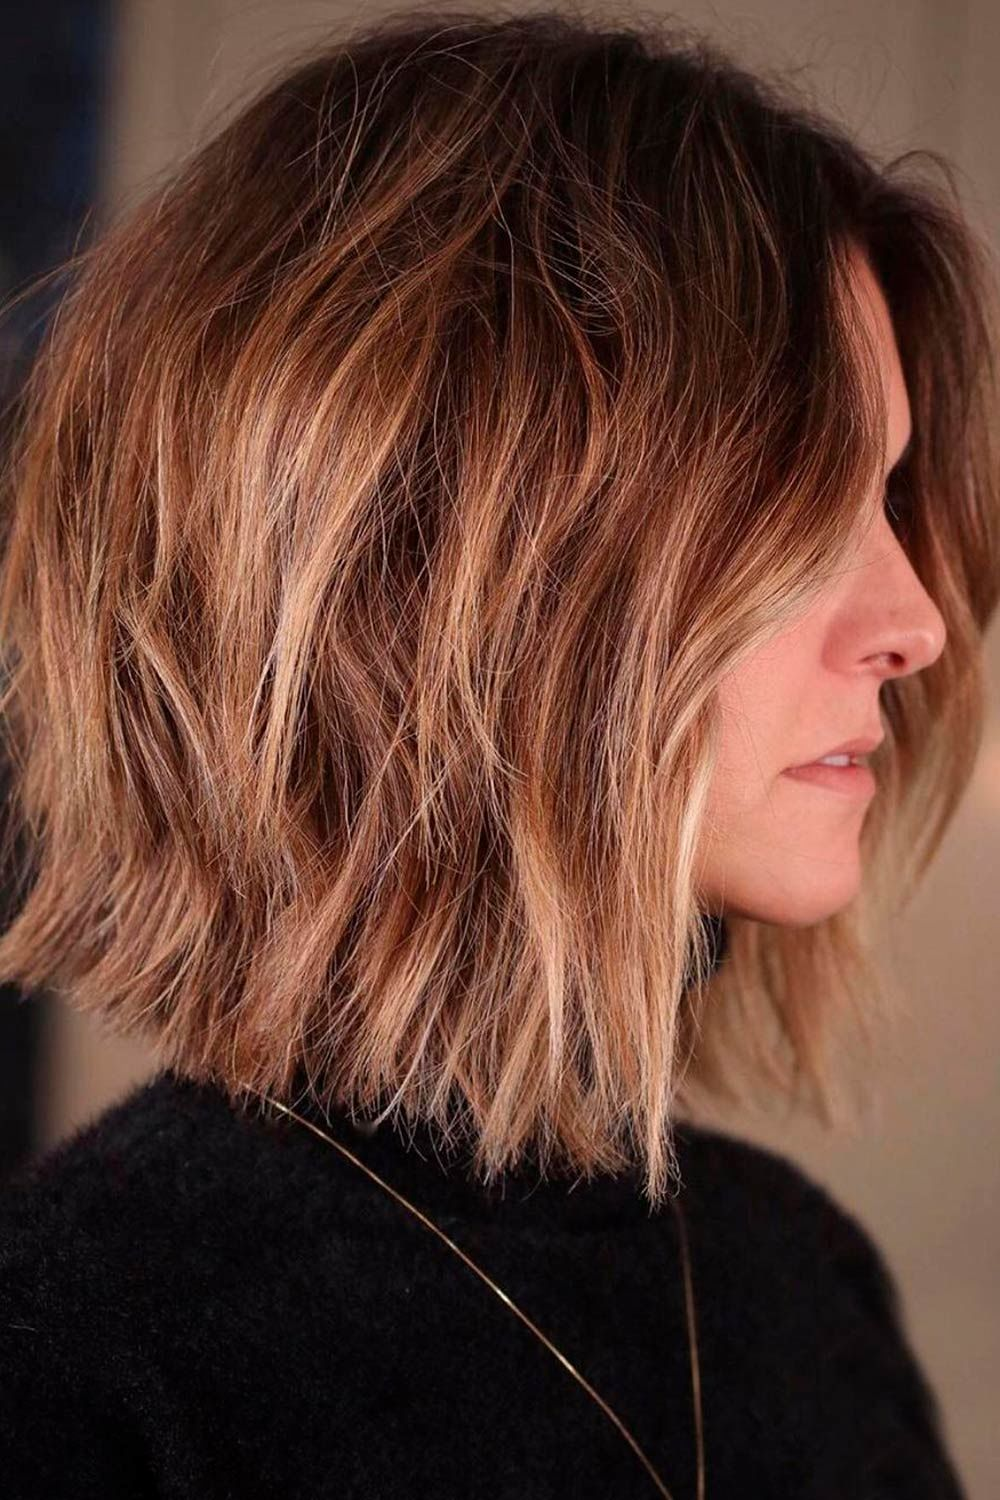 Messy Short Hairstyles For Round Faces, short hair for round faces, short hair round face